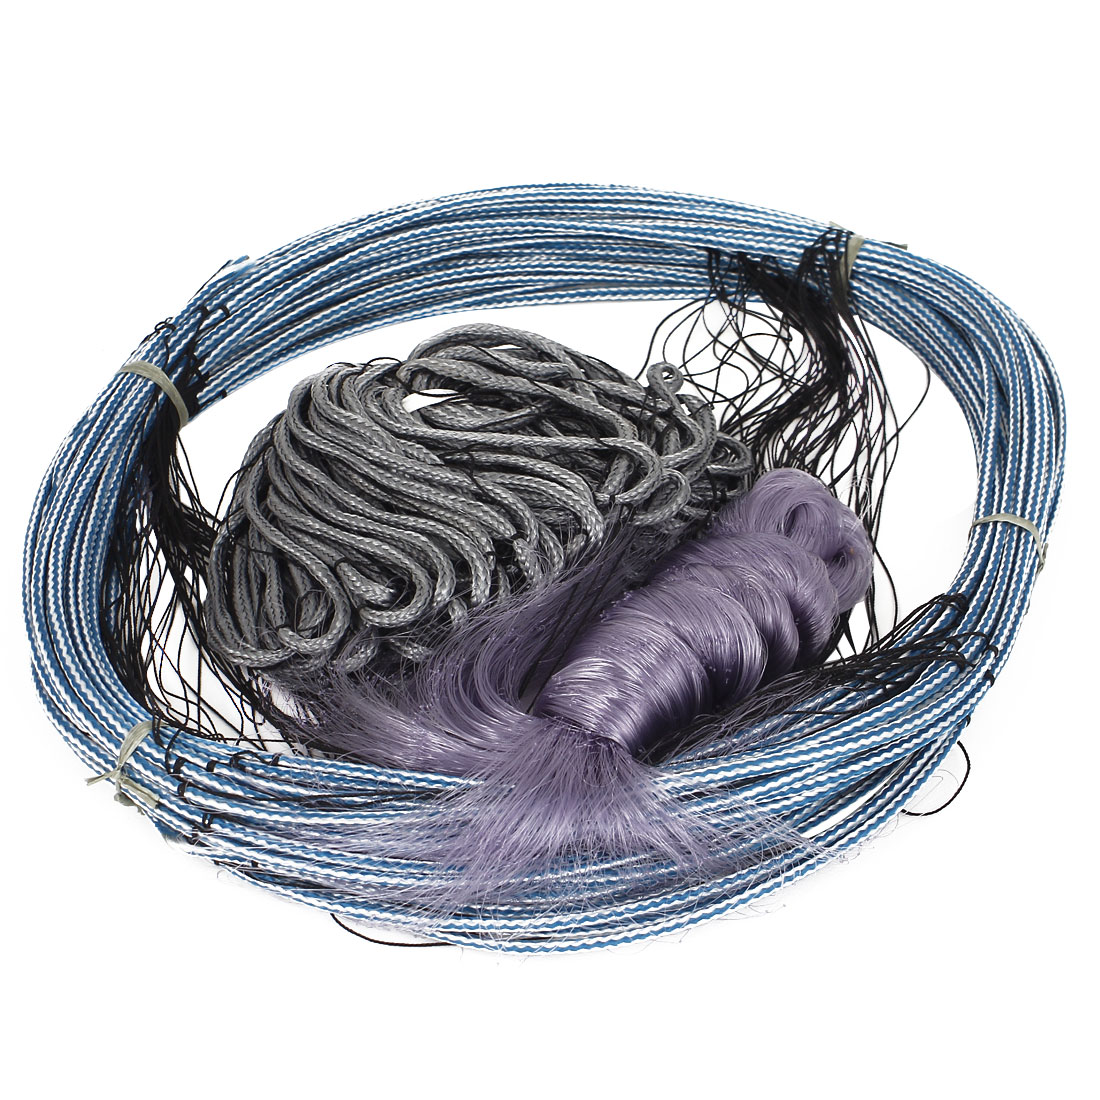 30Mx1.8M 5x5cm Mesh Hole Fishing Gill Monofilament Net Blue Gray Purple